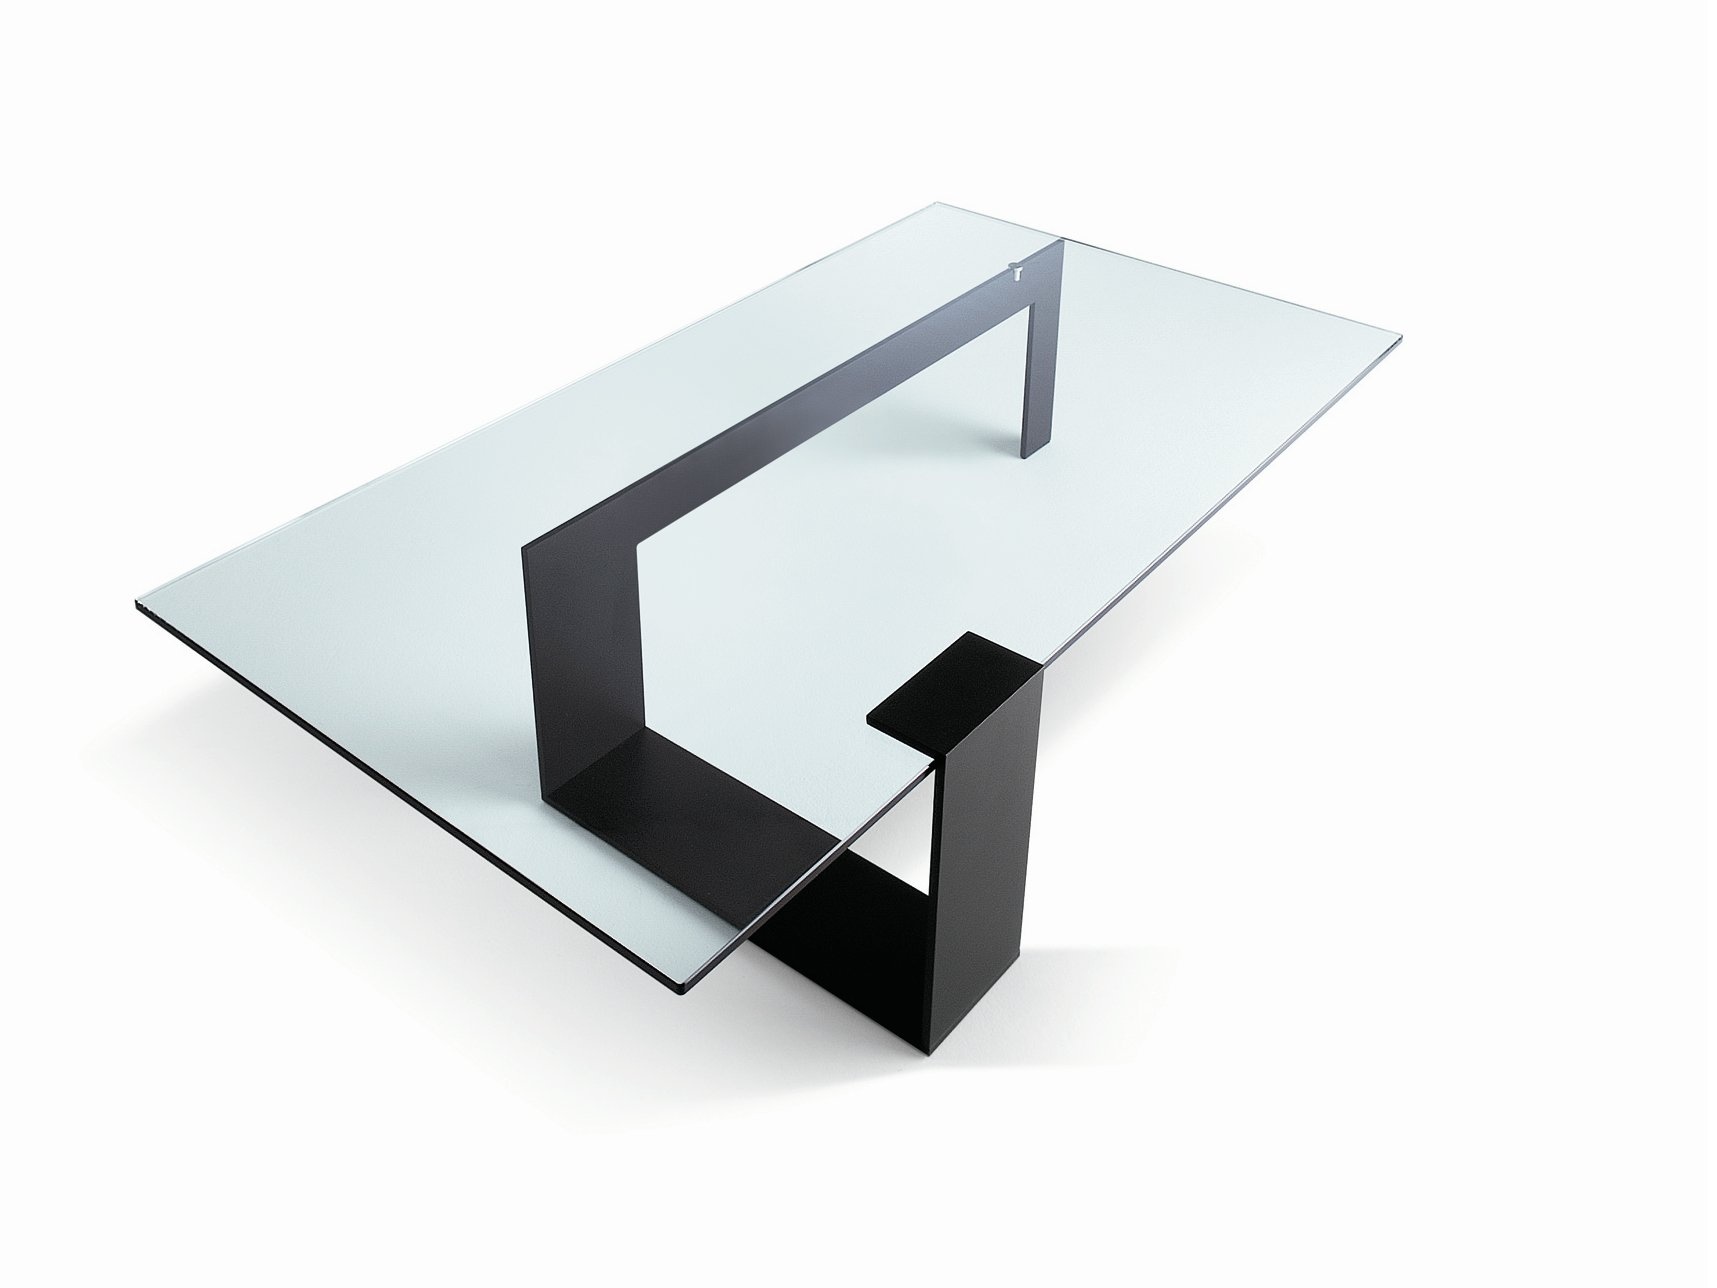 Table basse en verre plinsky by t d tonelli design design giulio mancini Table en verre design